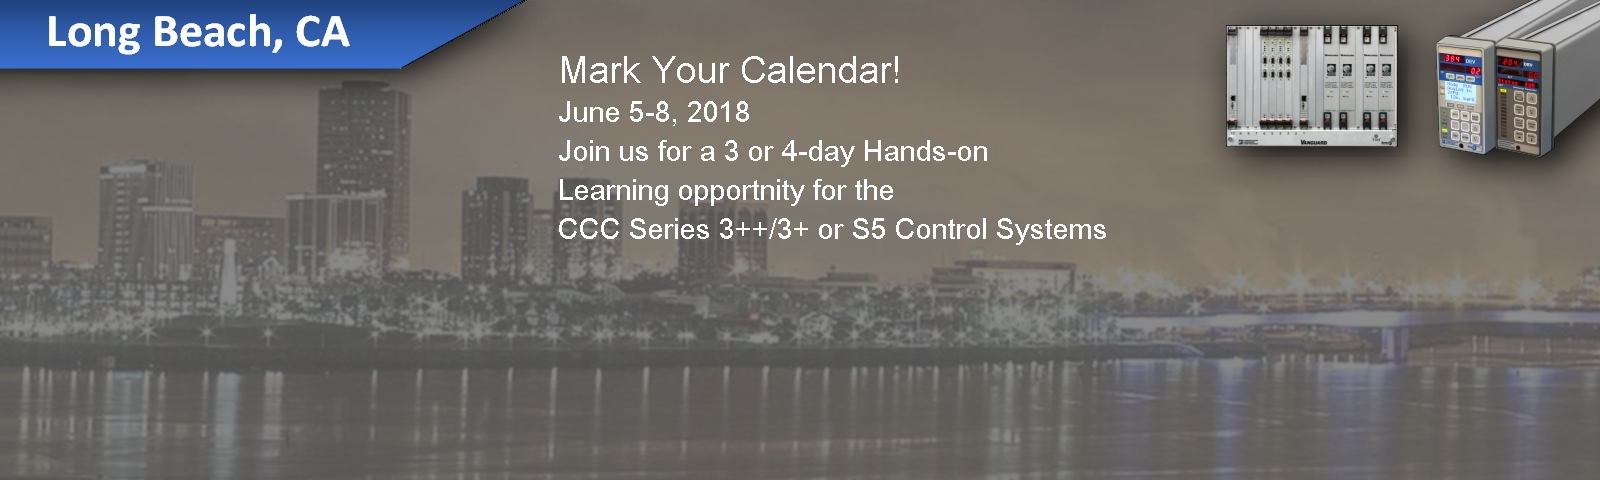 2018 Long Beach S3+/++ or S5 Regional Training | <a  data-cke-saved-href='https://learning.cccglobal.com/ProductDetails.aspx?ProductID=290' href='http://learning.cccglobal.com/ProductDetails.aspx?ProductID=290'>Register Now</a>